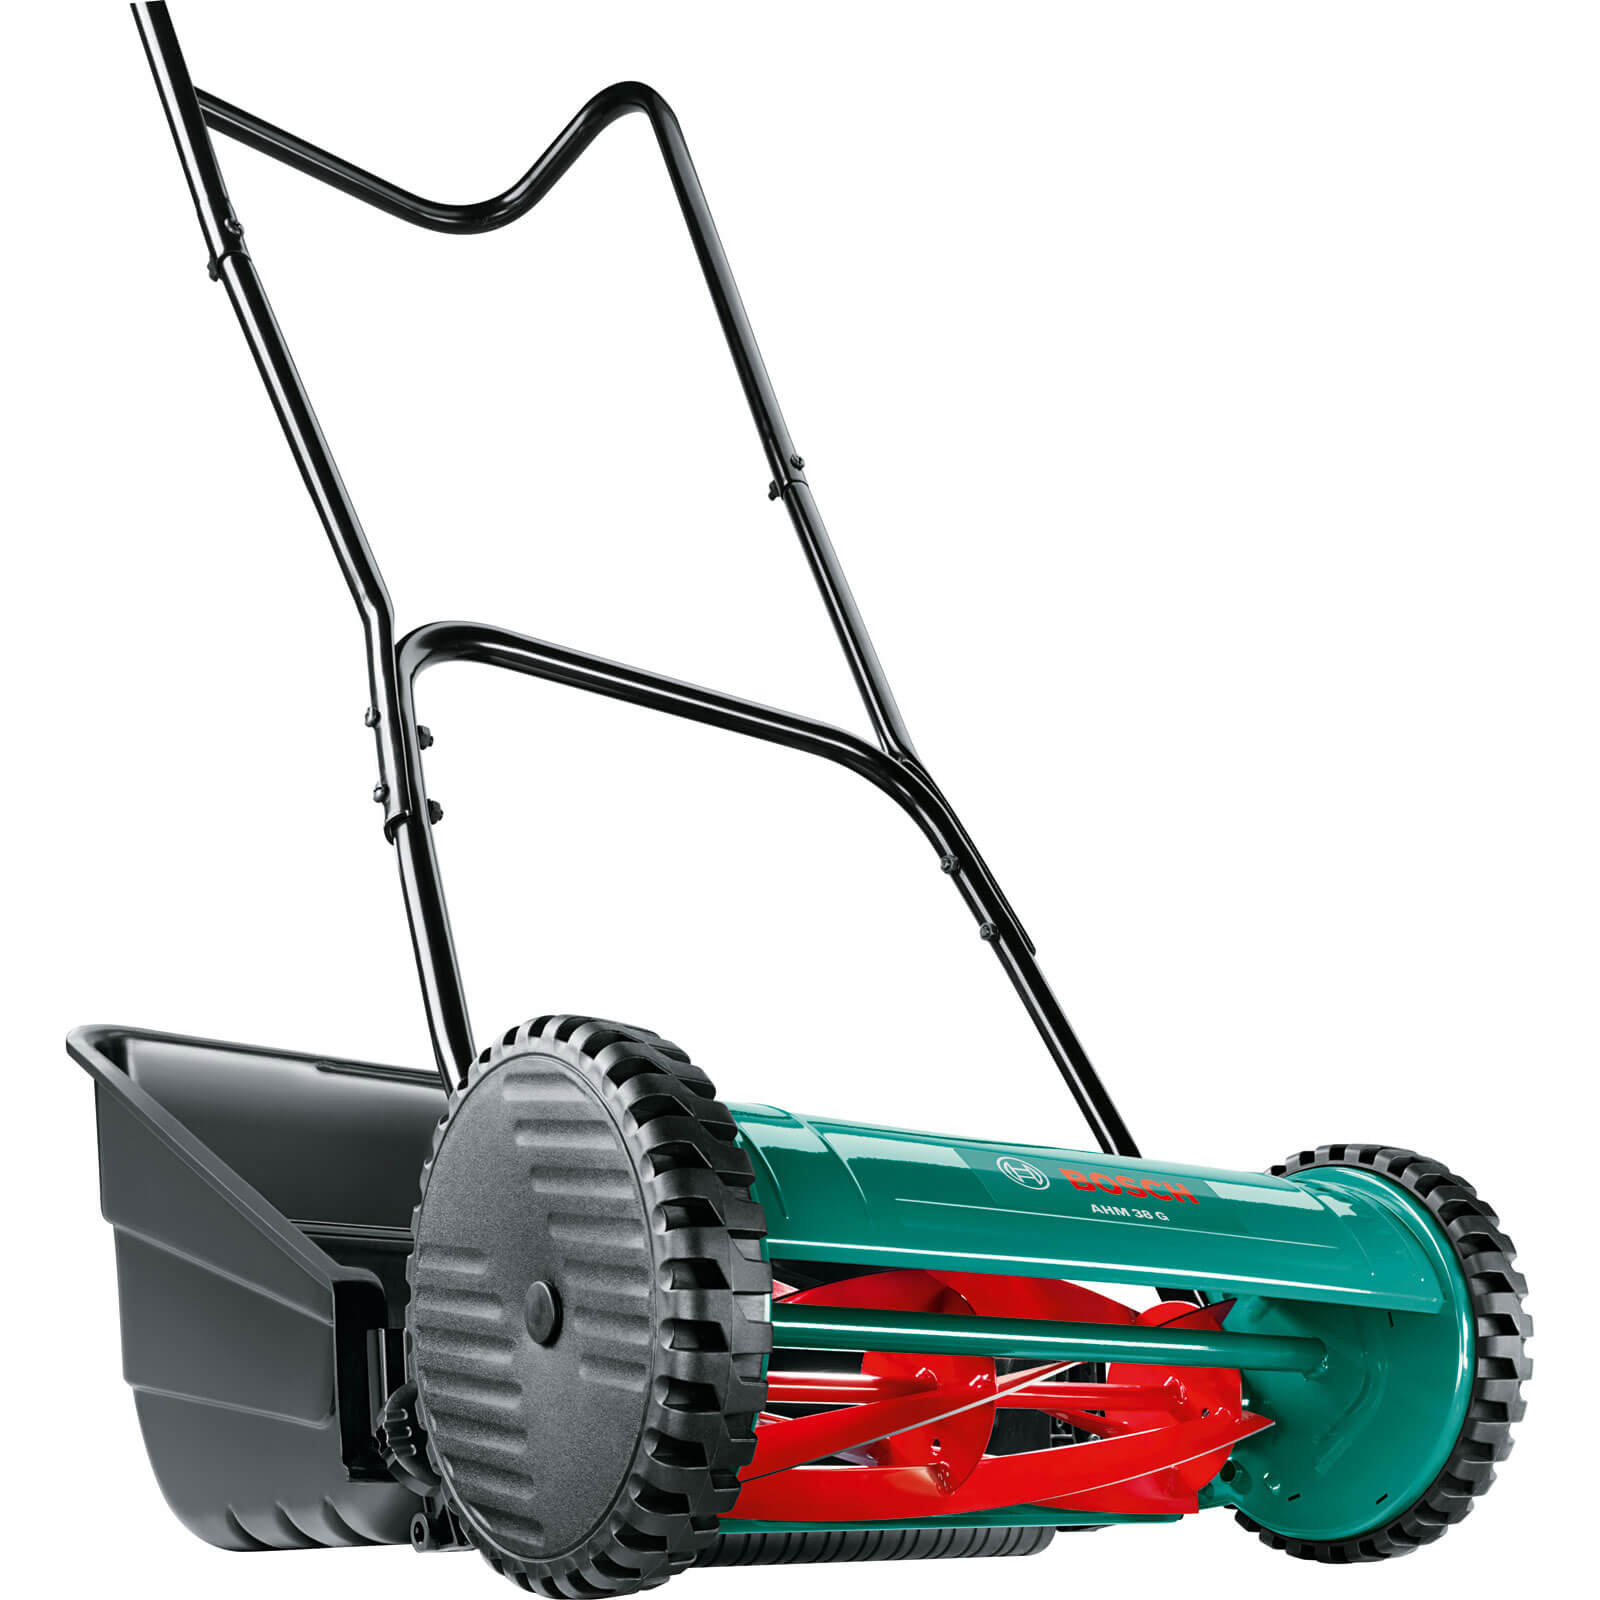 Image of Bosch AHM 38G Push Hand Cylinder Lawnmower 380mm